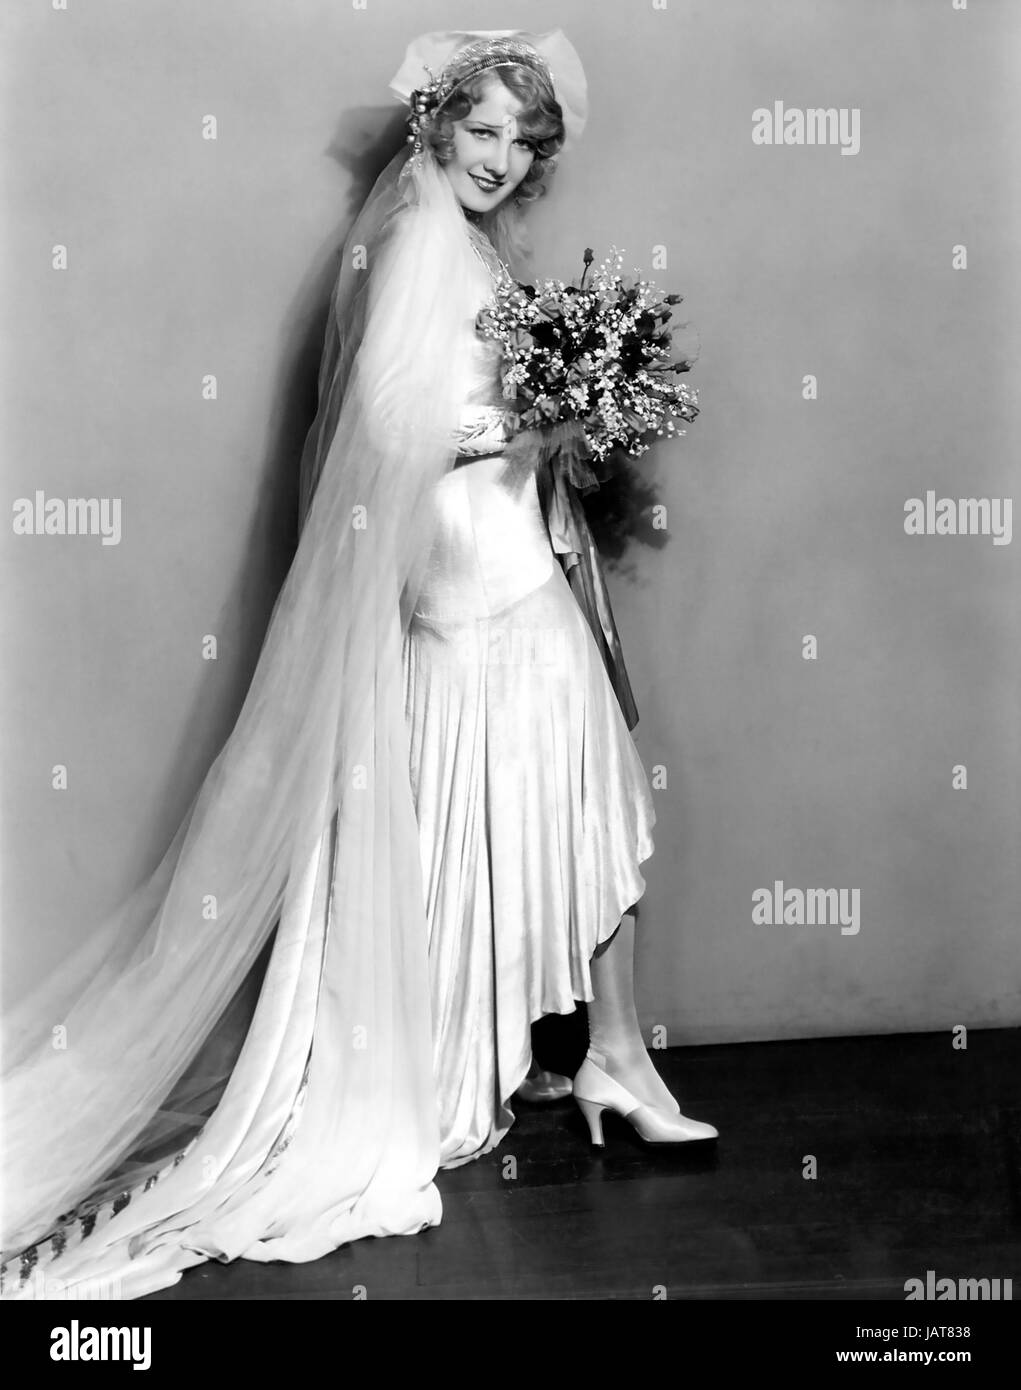 OUR BLUSHING BRIDES 1930 MGM film with Anita Page - Stock Image